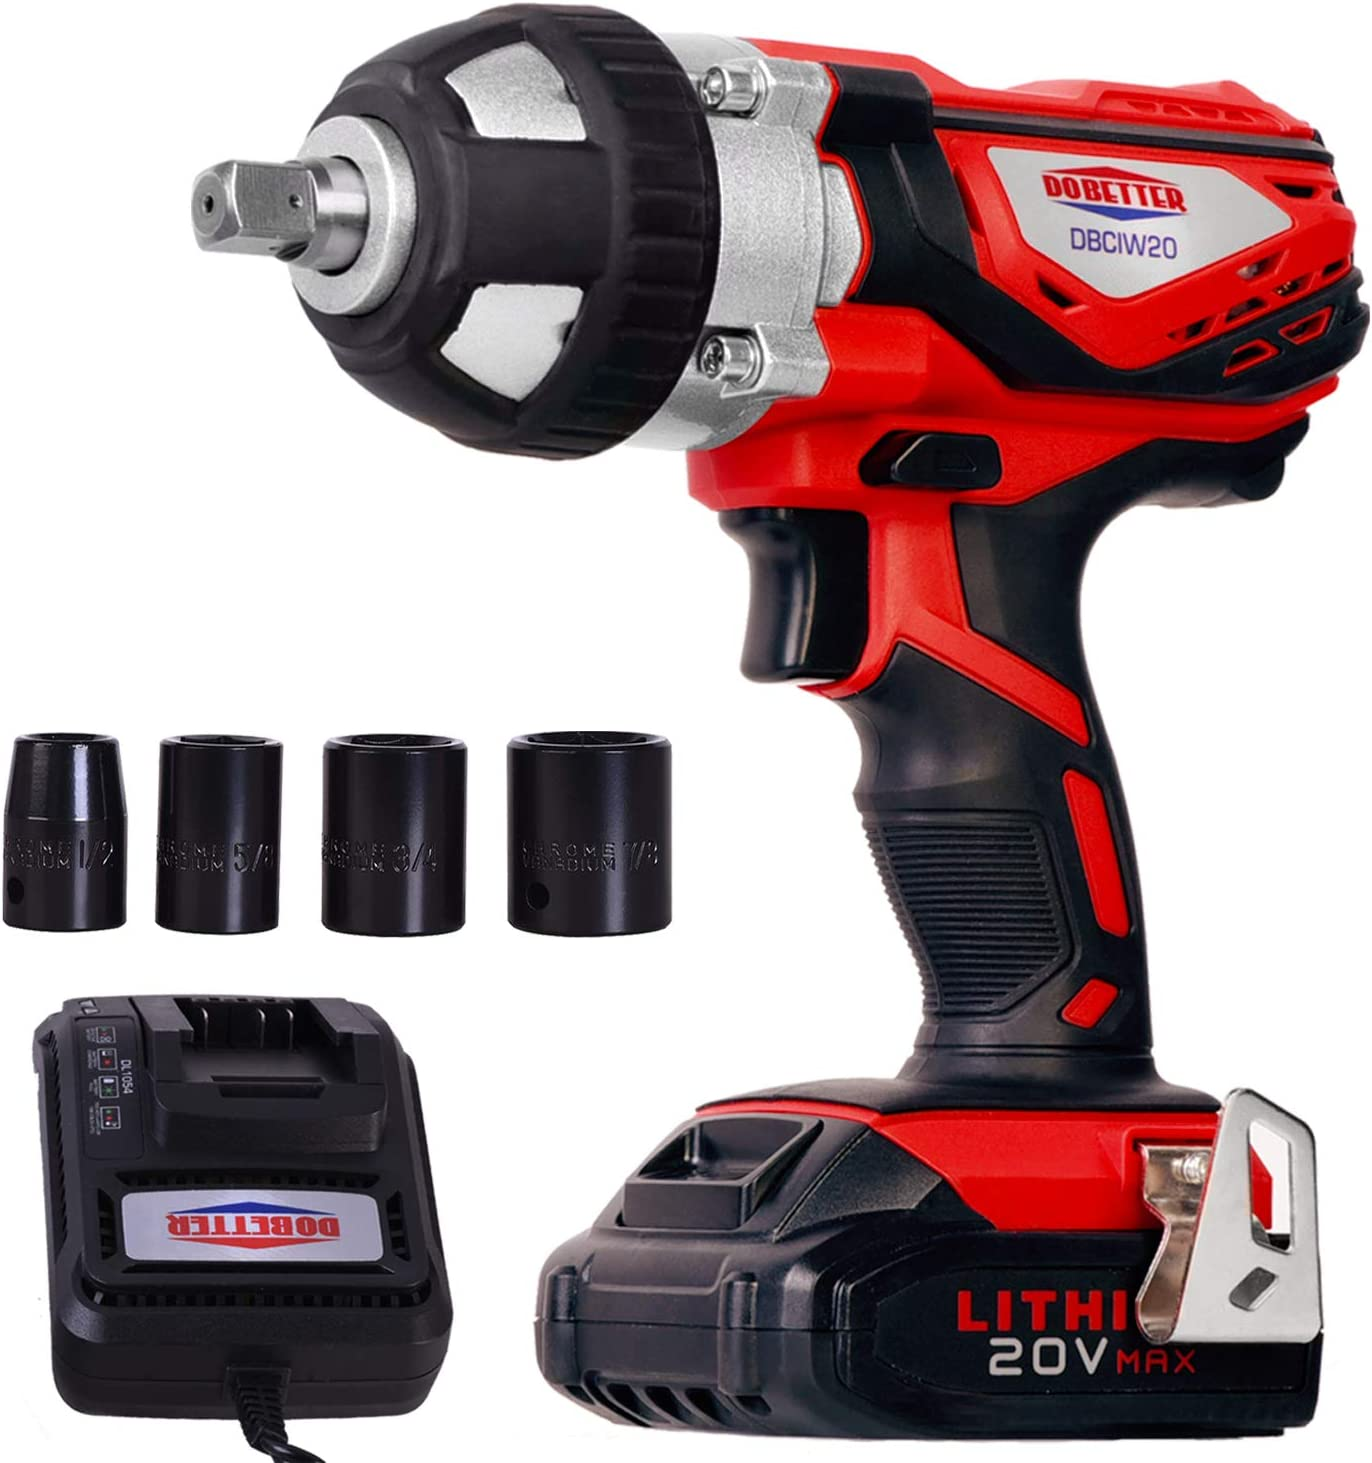 """Cordless Impact Wrench 1/2"""" Max Torque 300N.m Compact Battery Impact Wrench with 4Pcs Sockets"""